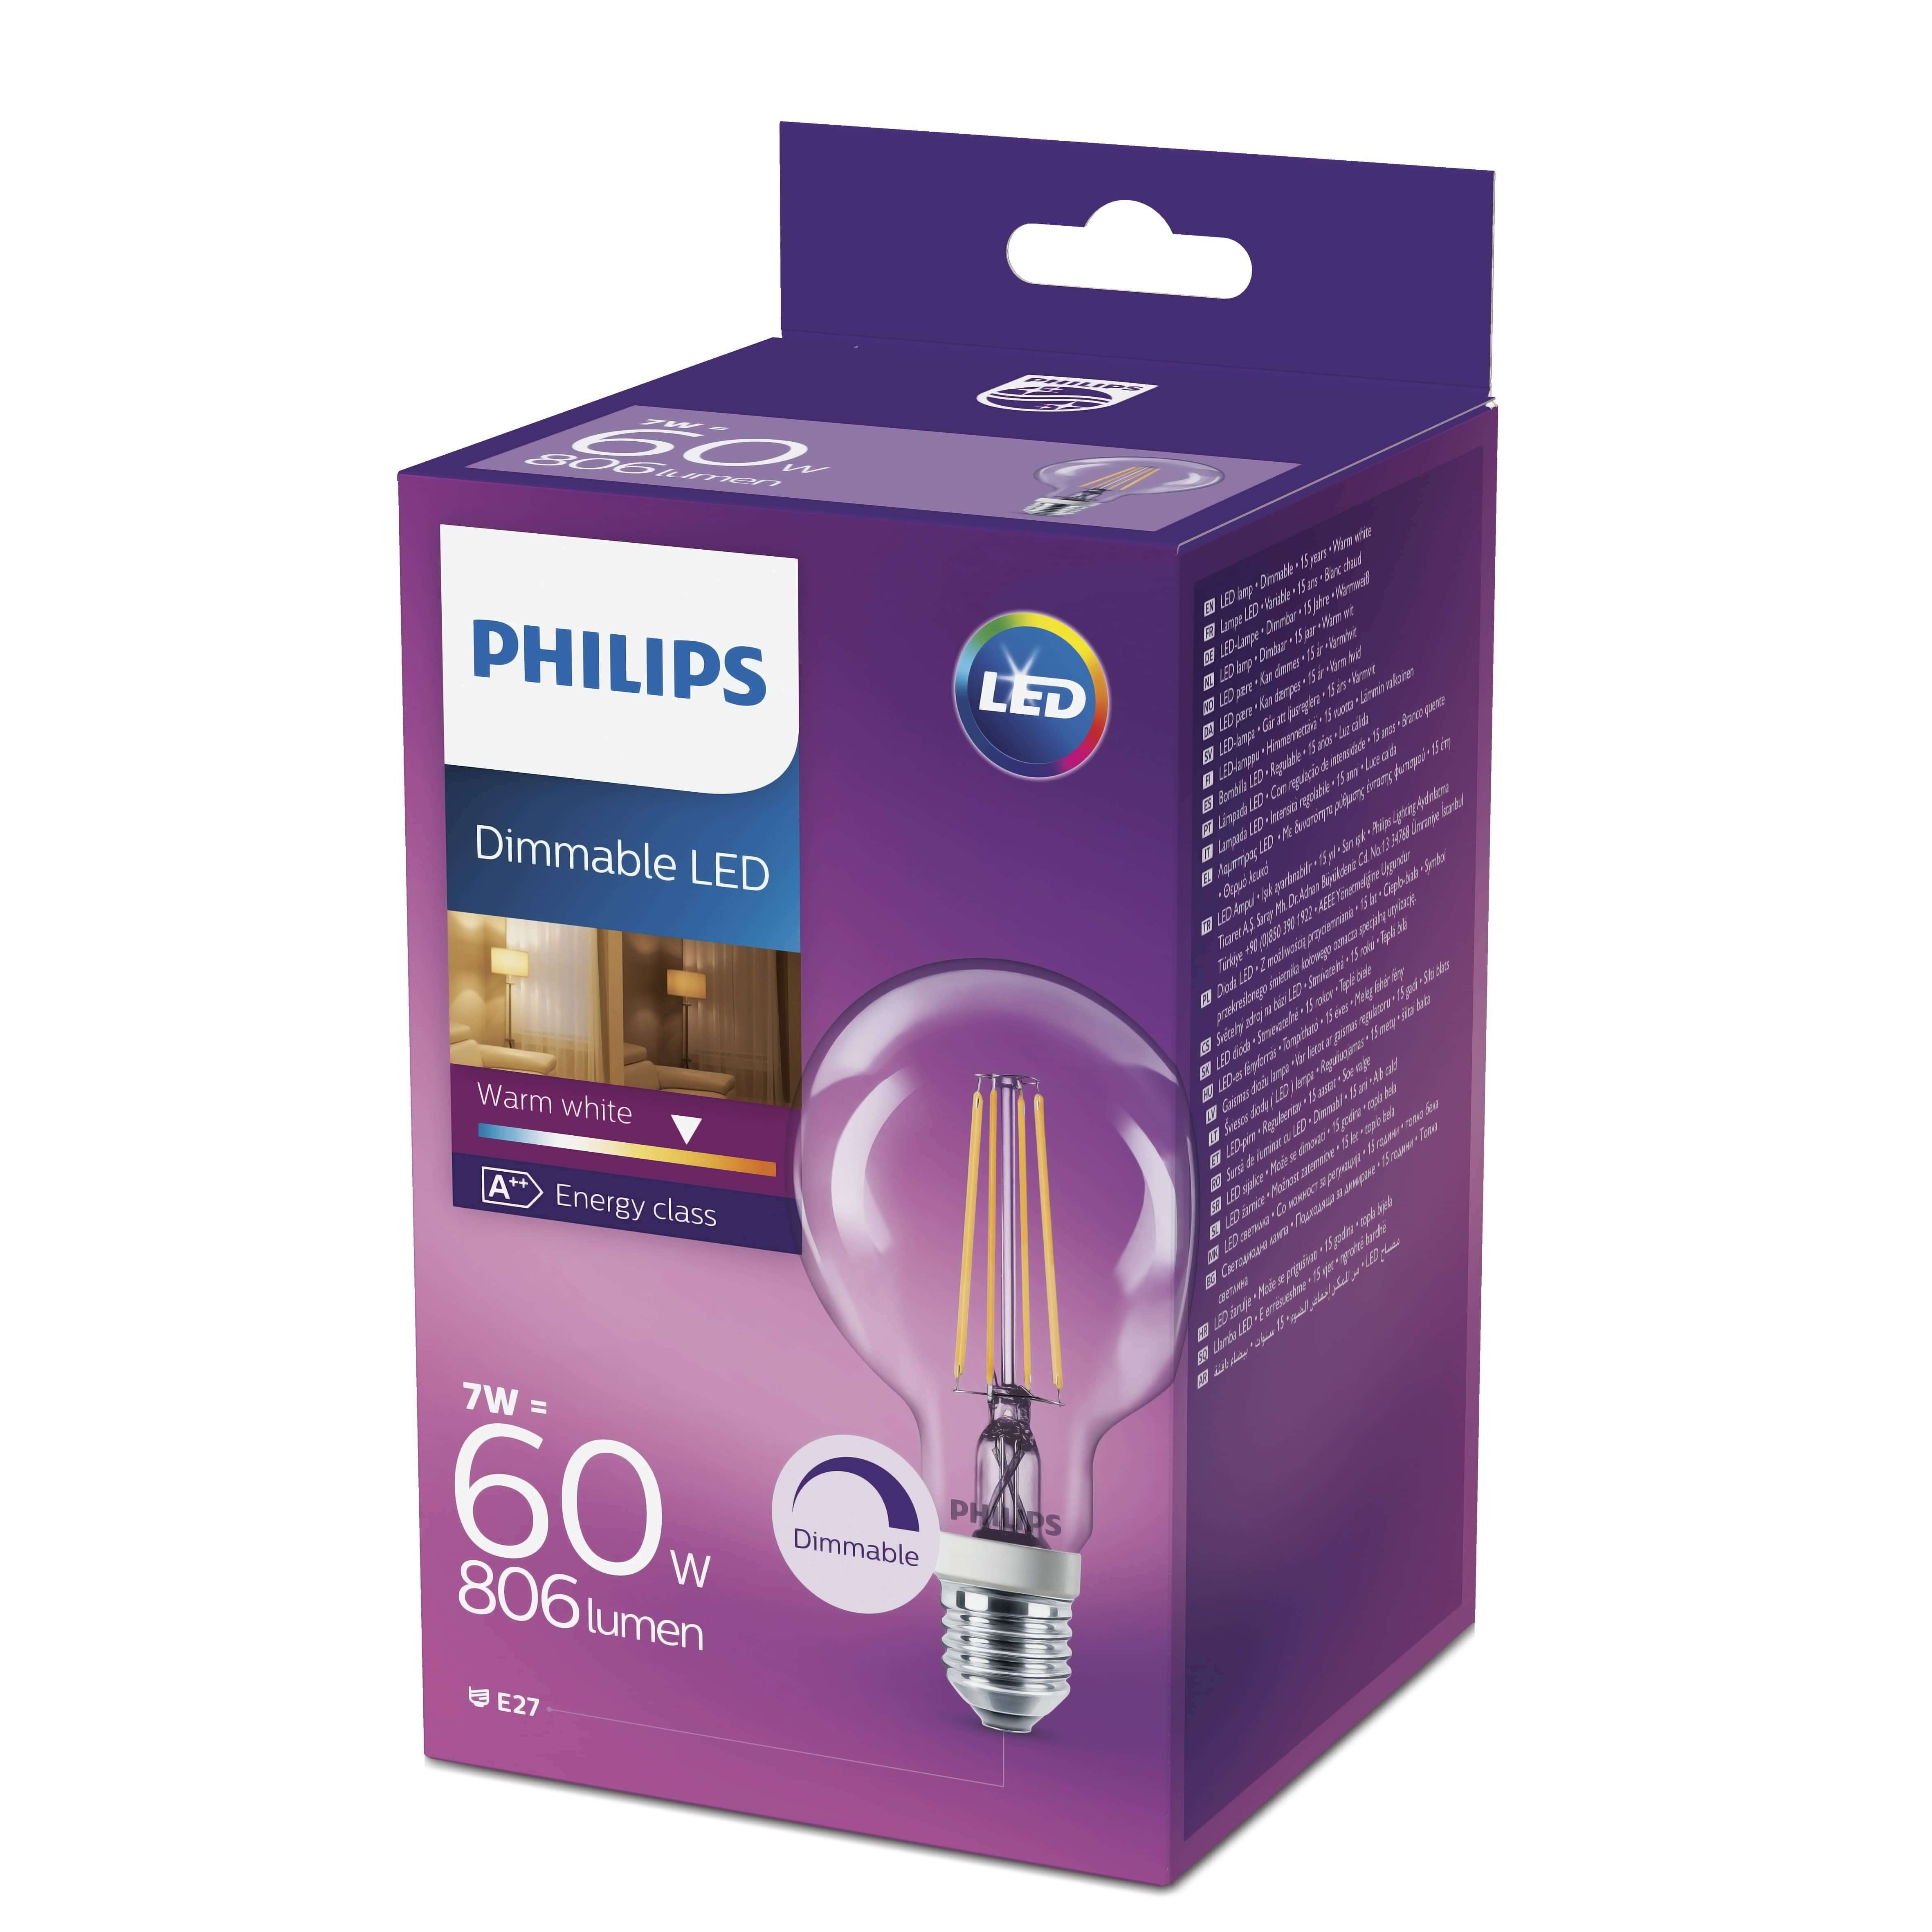 philips e27 led globe filament 7w 806lm warmweiss dimmbar. Black Bedroom Furniture Sets. Home Design Ideas